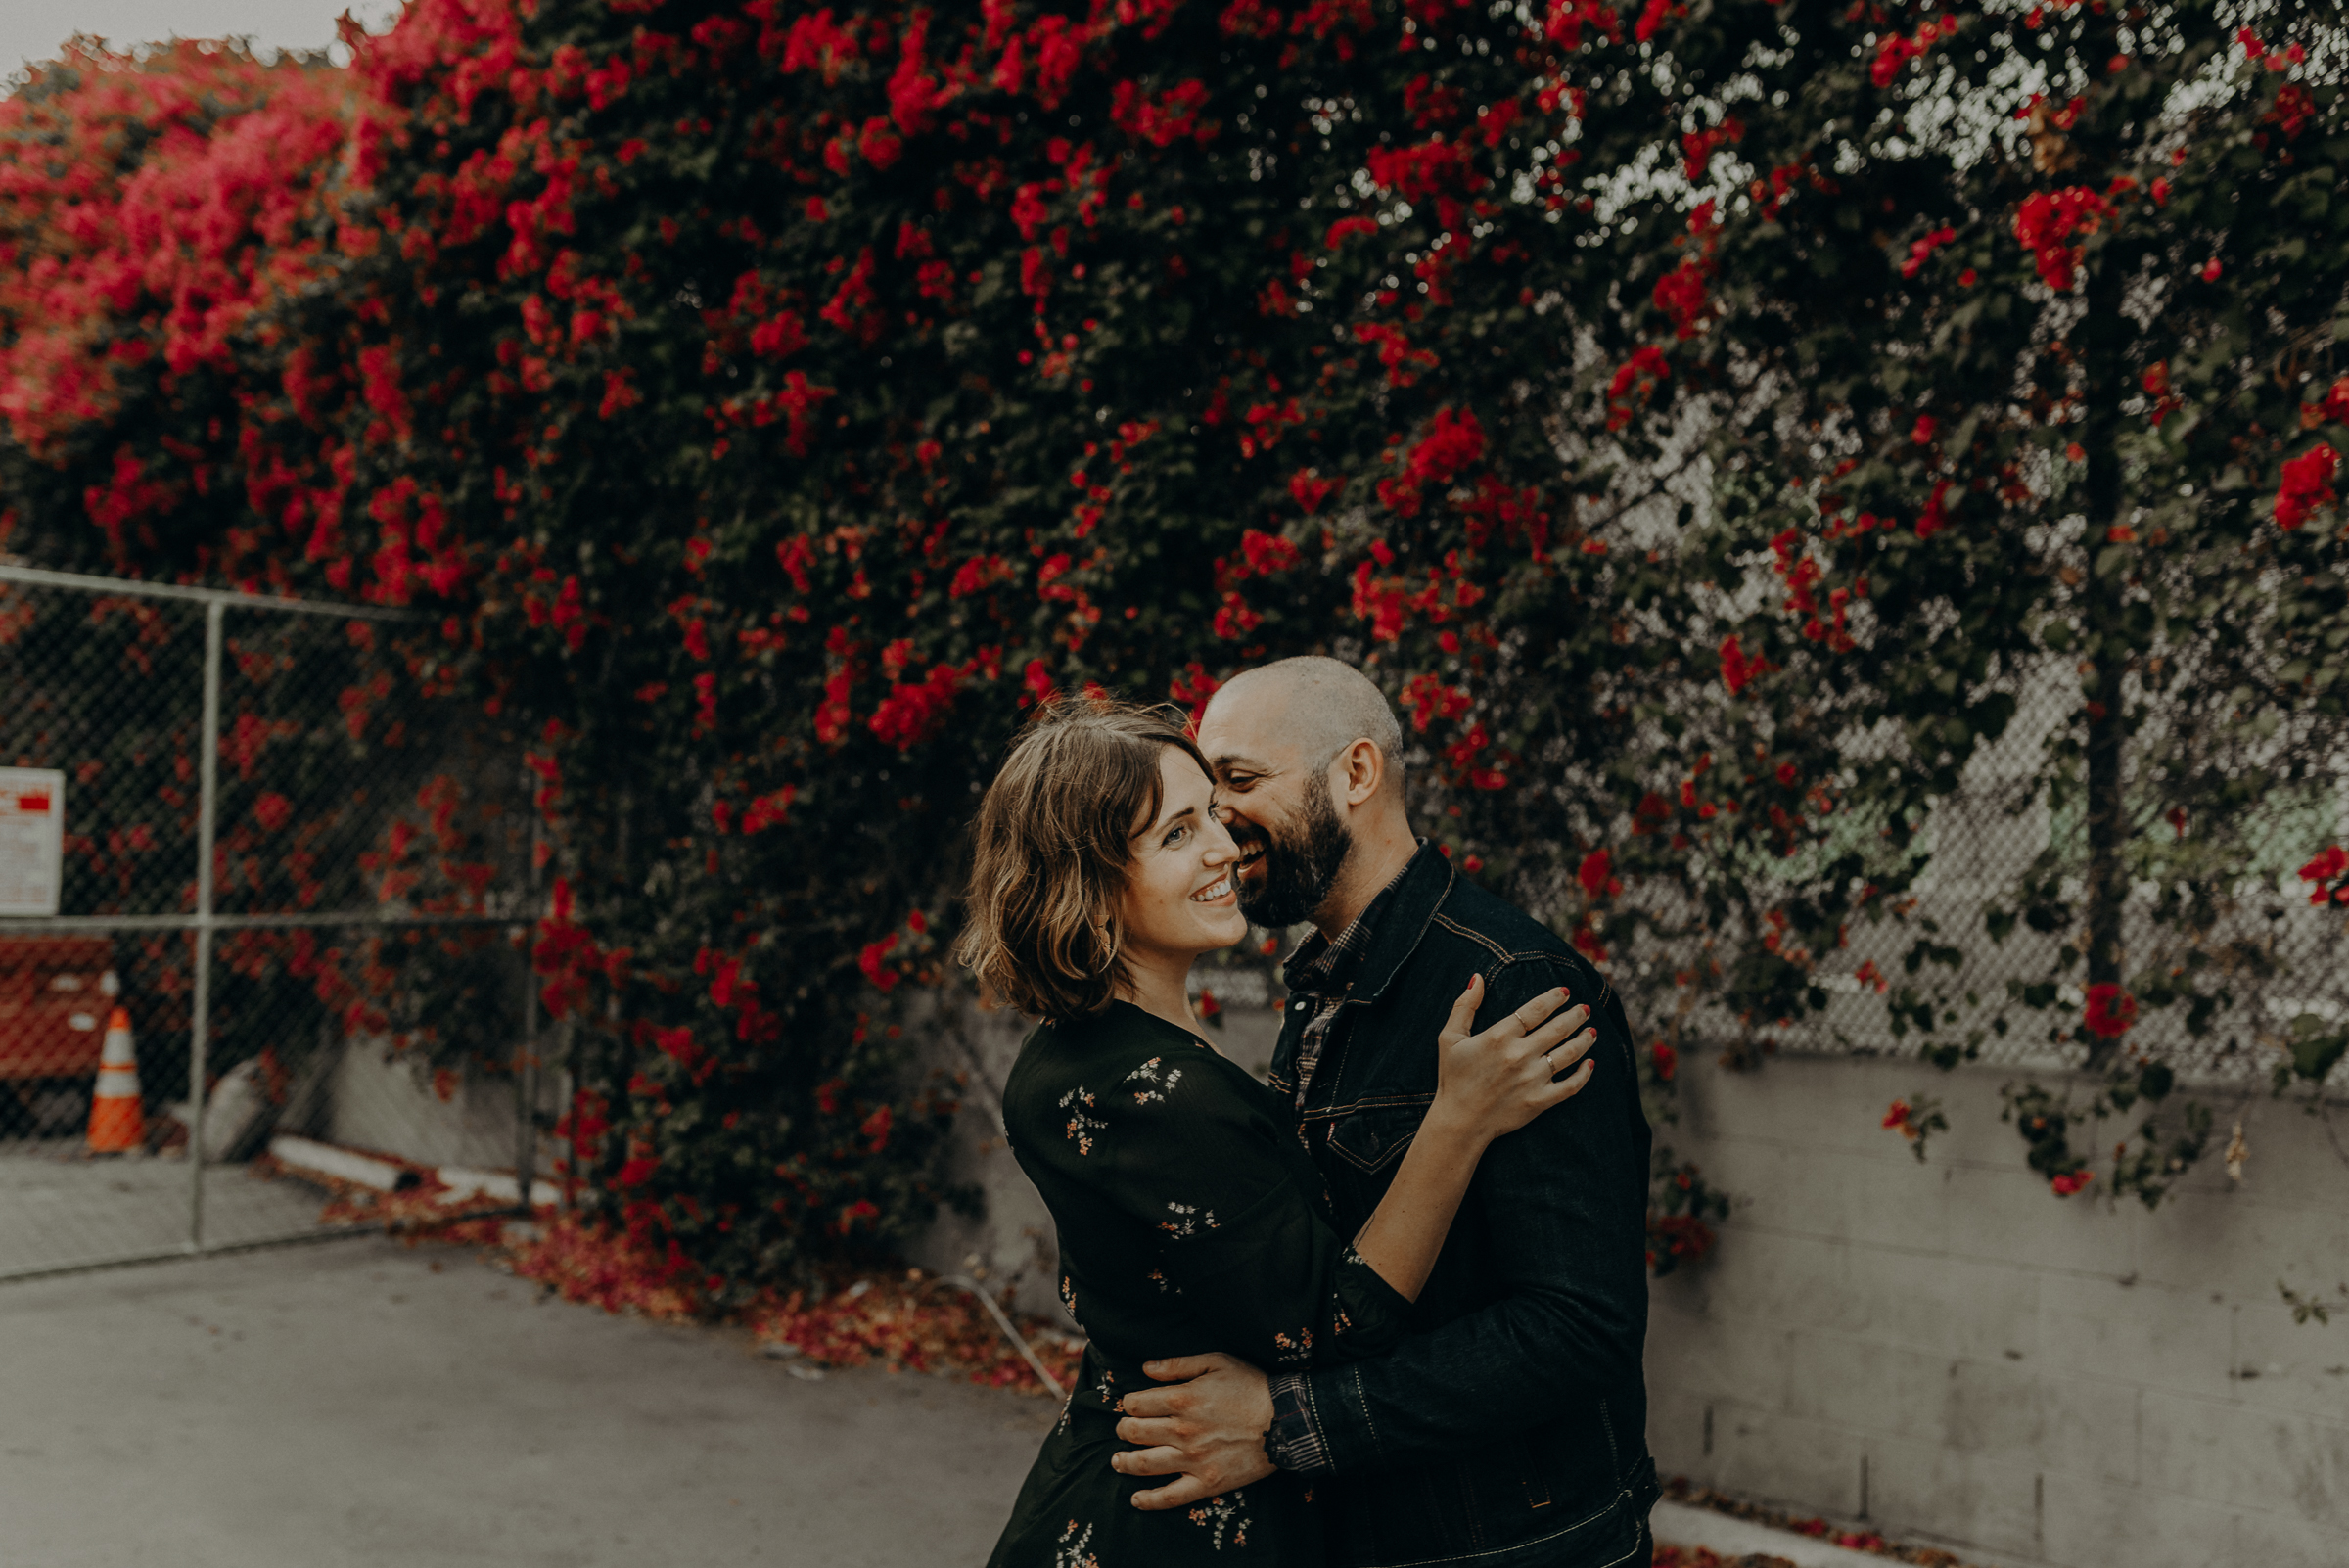 Isaiah + Taylor Photography - Downtown Los Angeles Arts District Engagement12.jpg